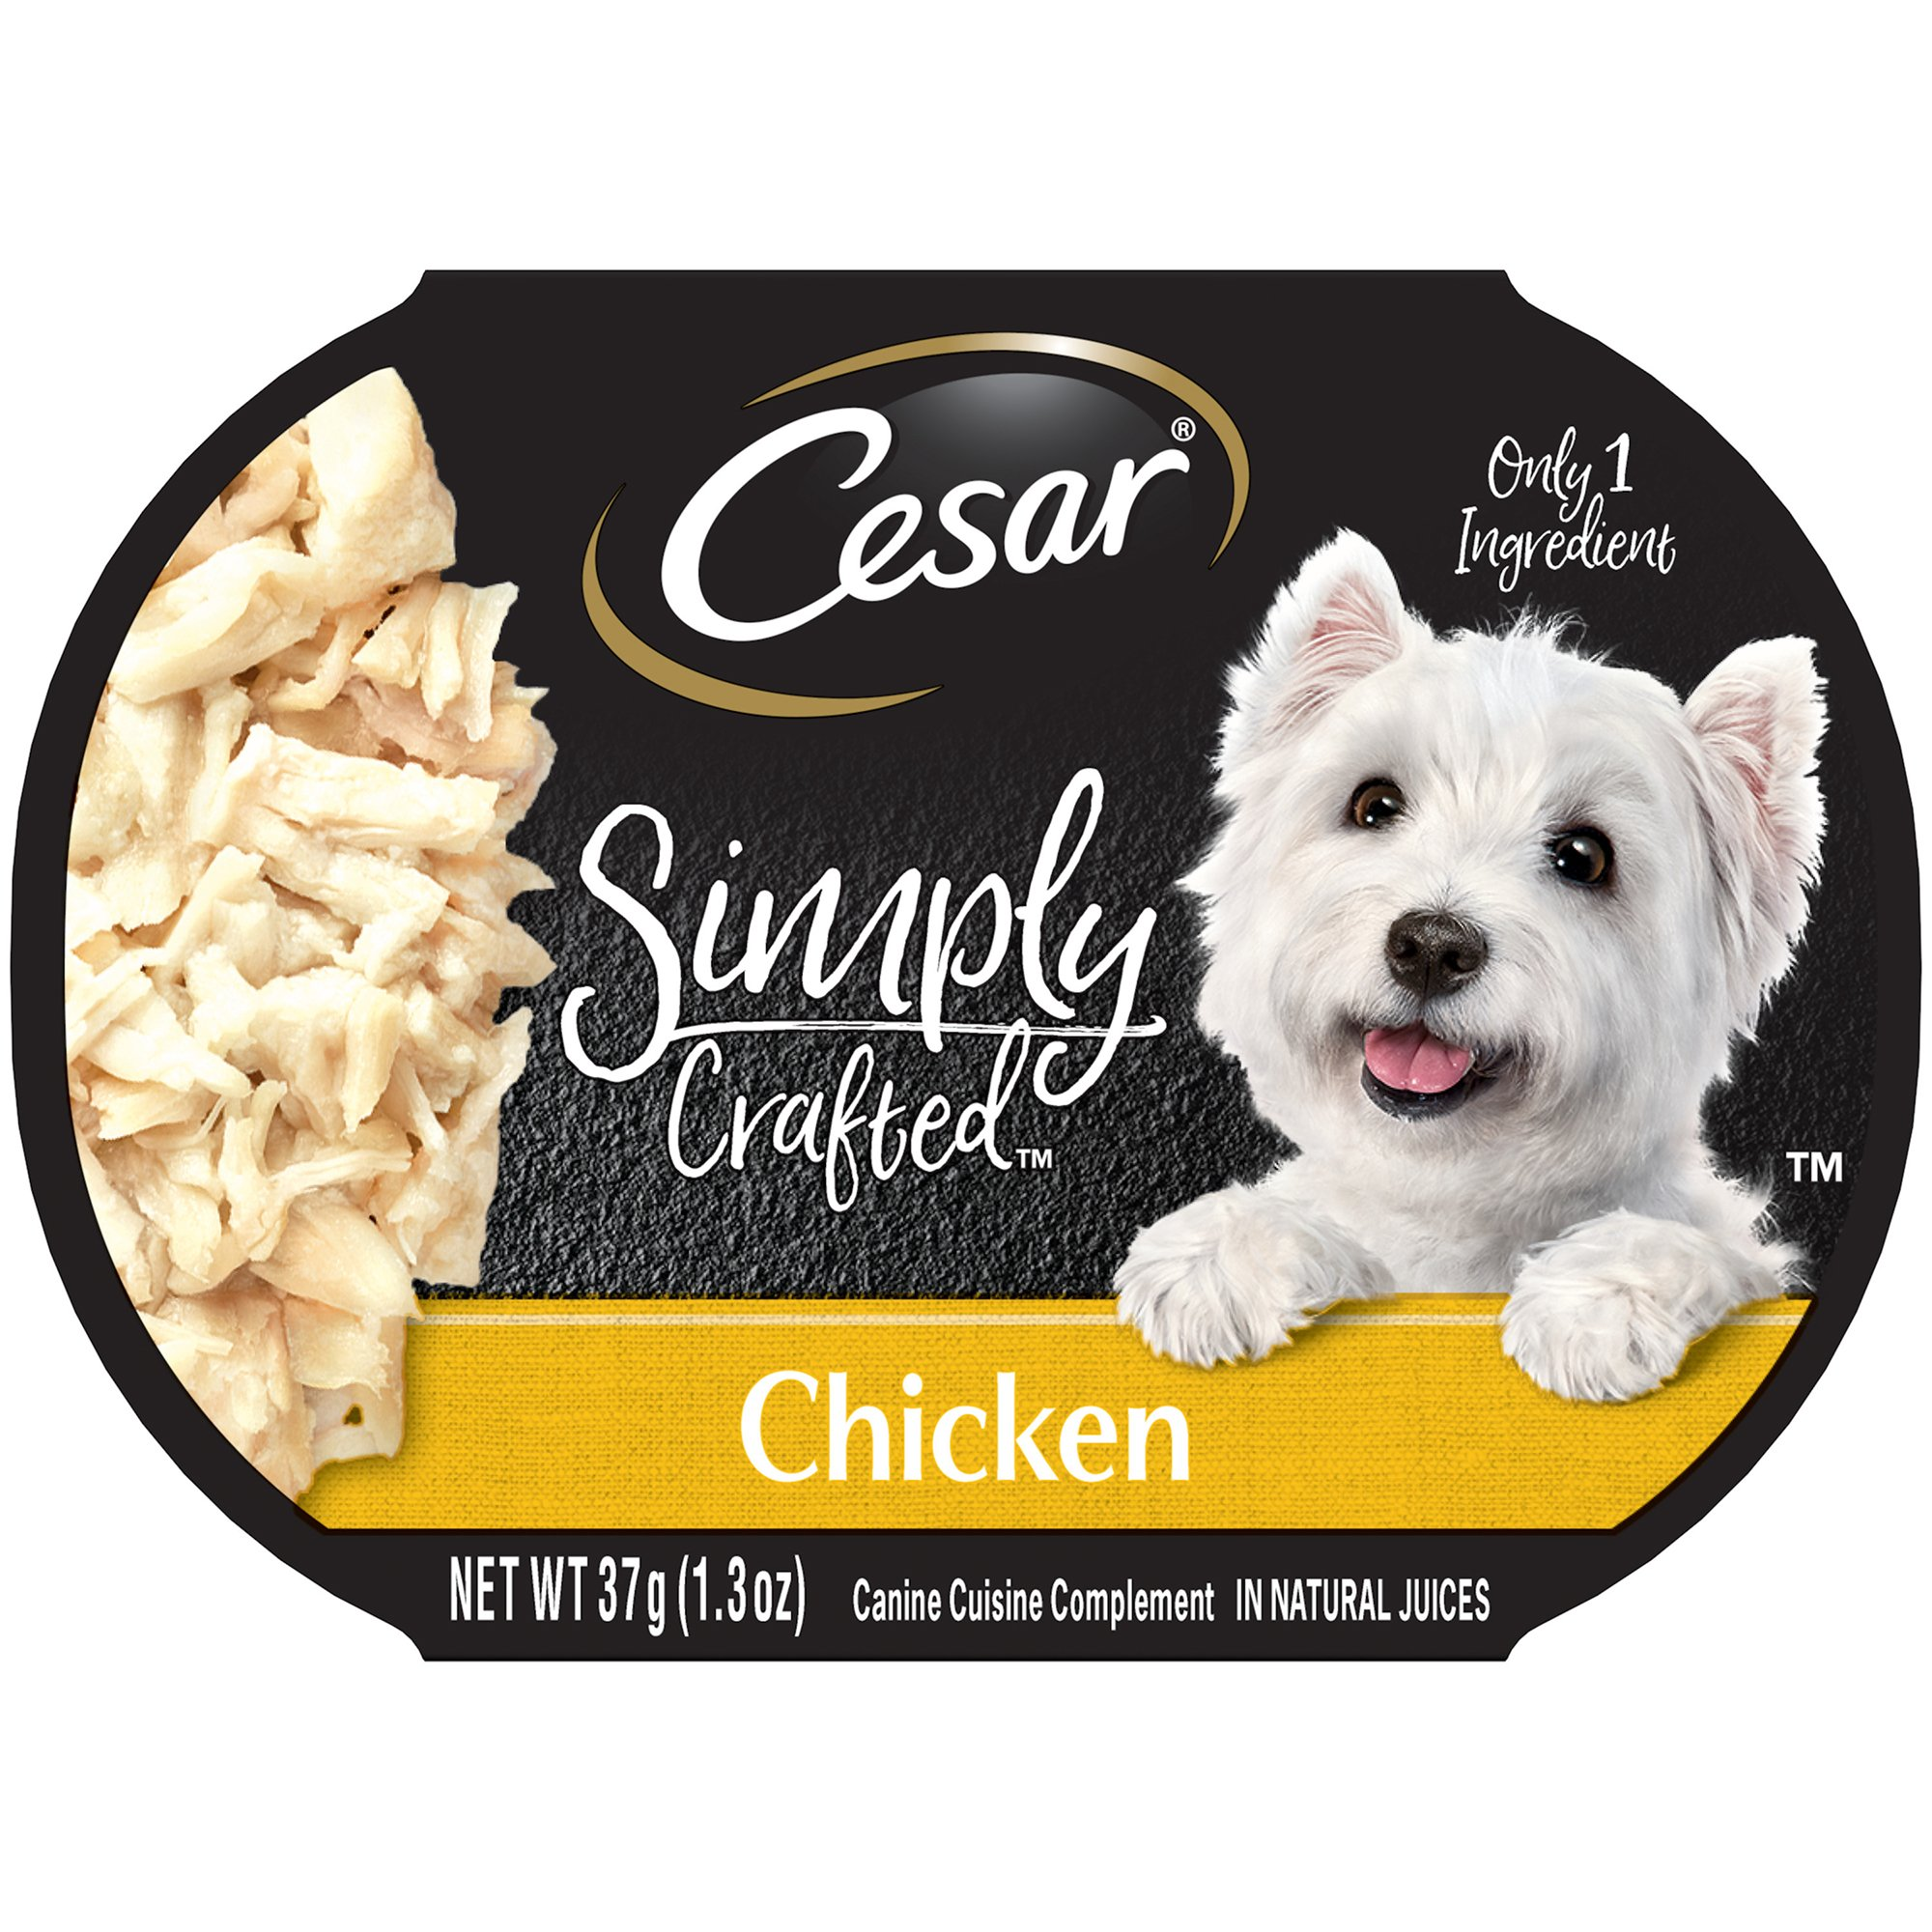 Cesar Simply Crafted Adult Wet Dog Food Cuisine Complement, Chicken, (Pack Of 10) 1.3 Oz. Tub by Cesar